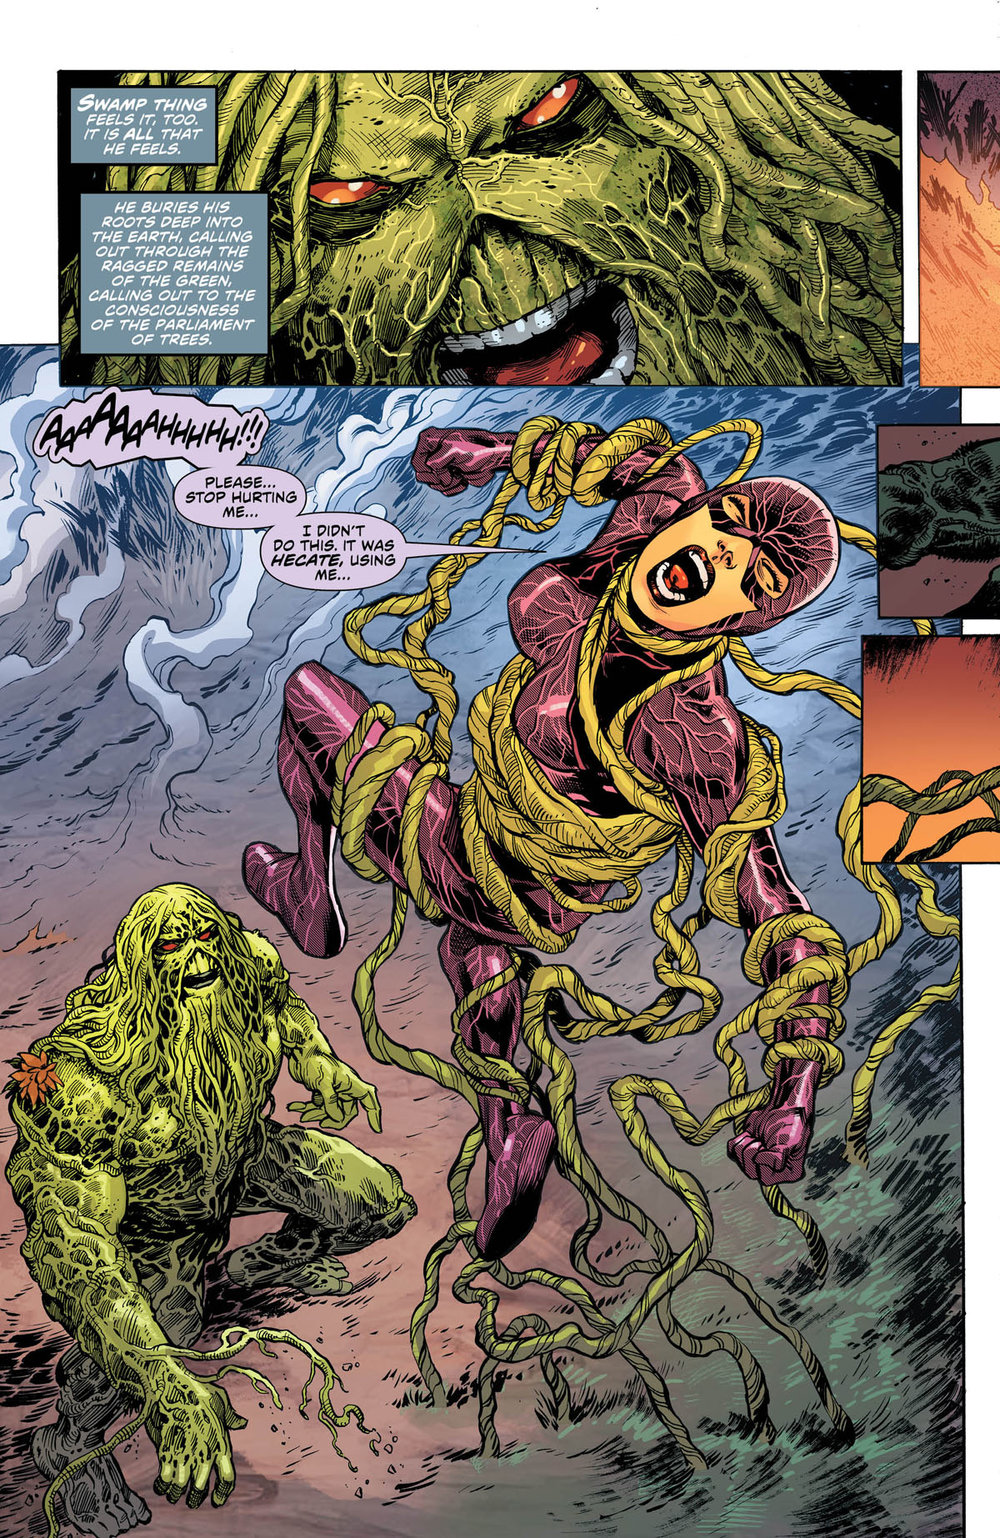 justice-league-dark-wonder-woman-the-witching-hour-1-page-2.jpg